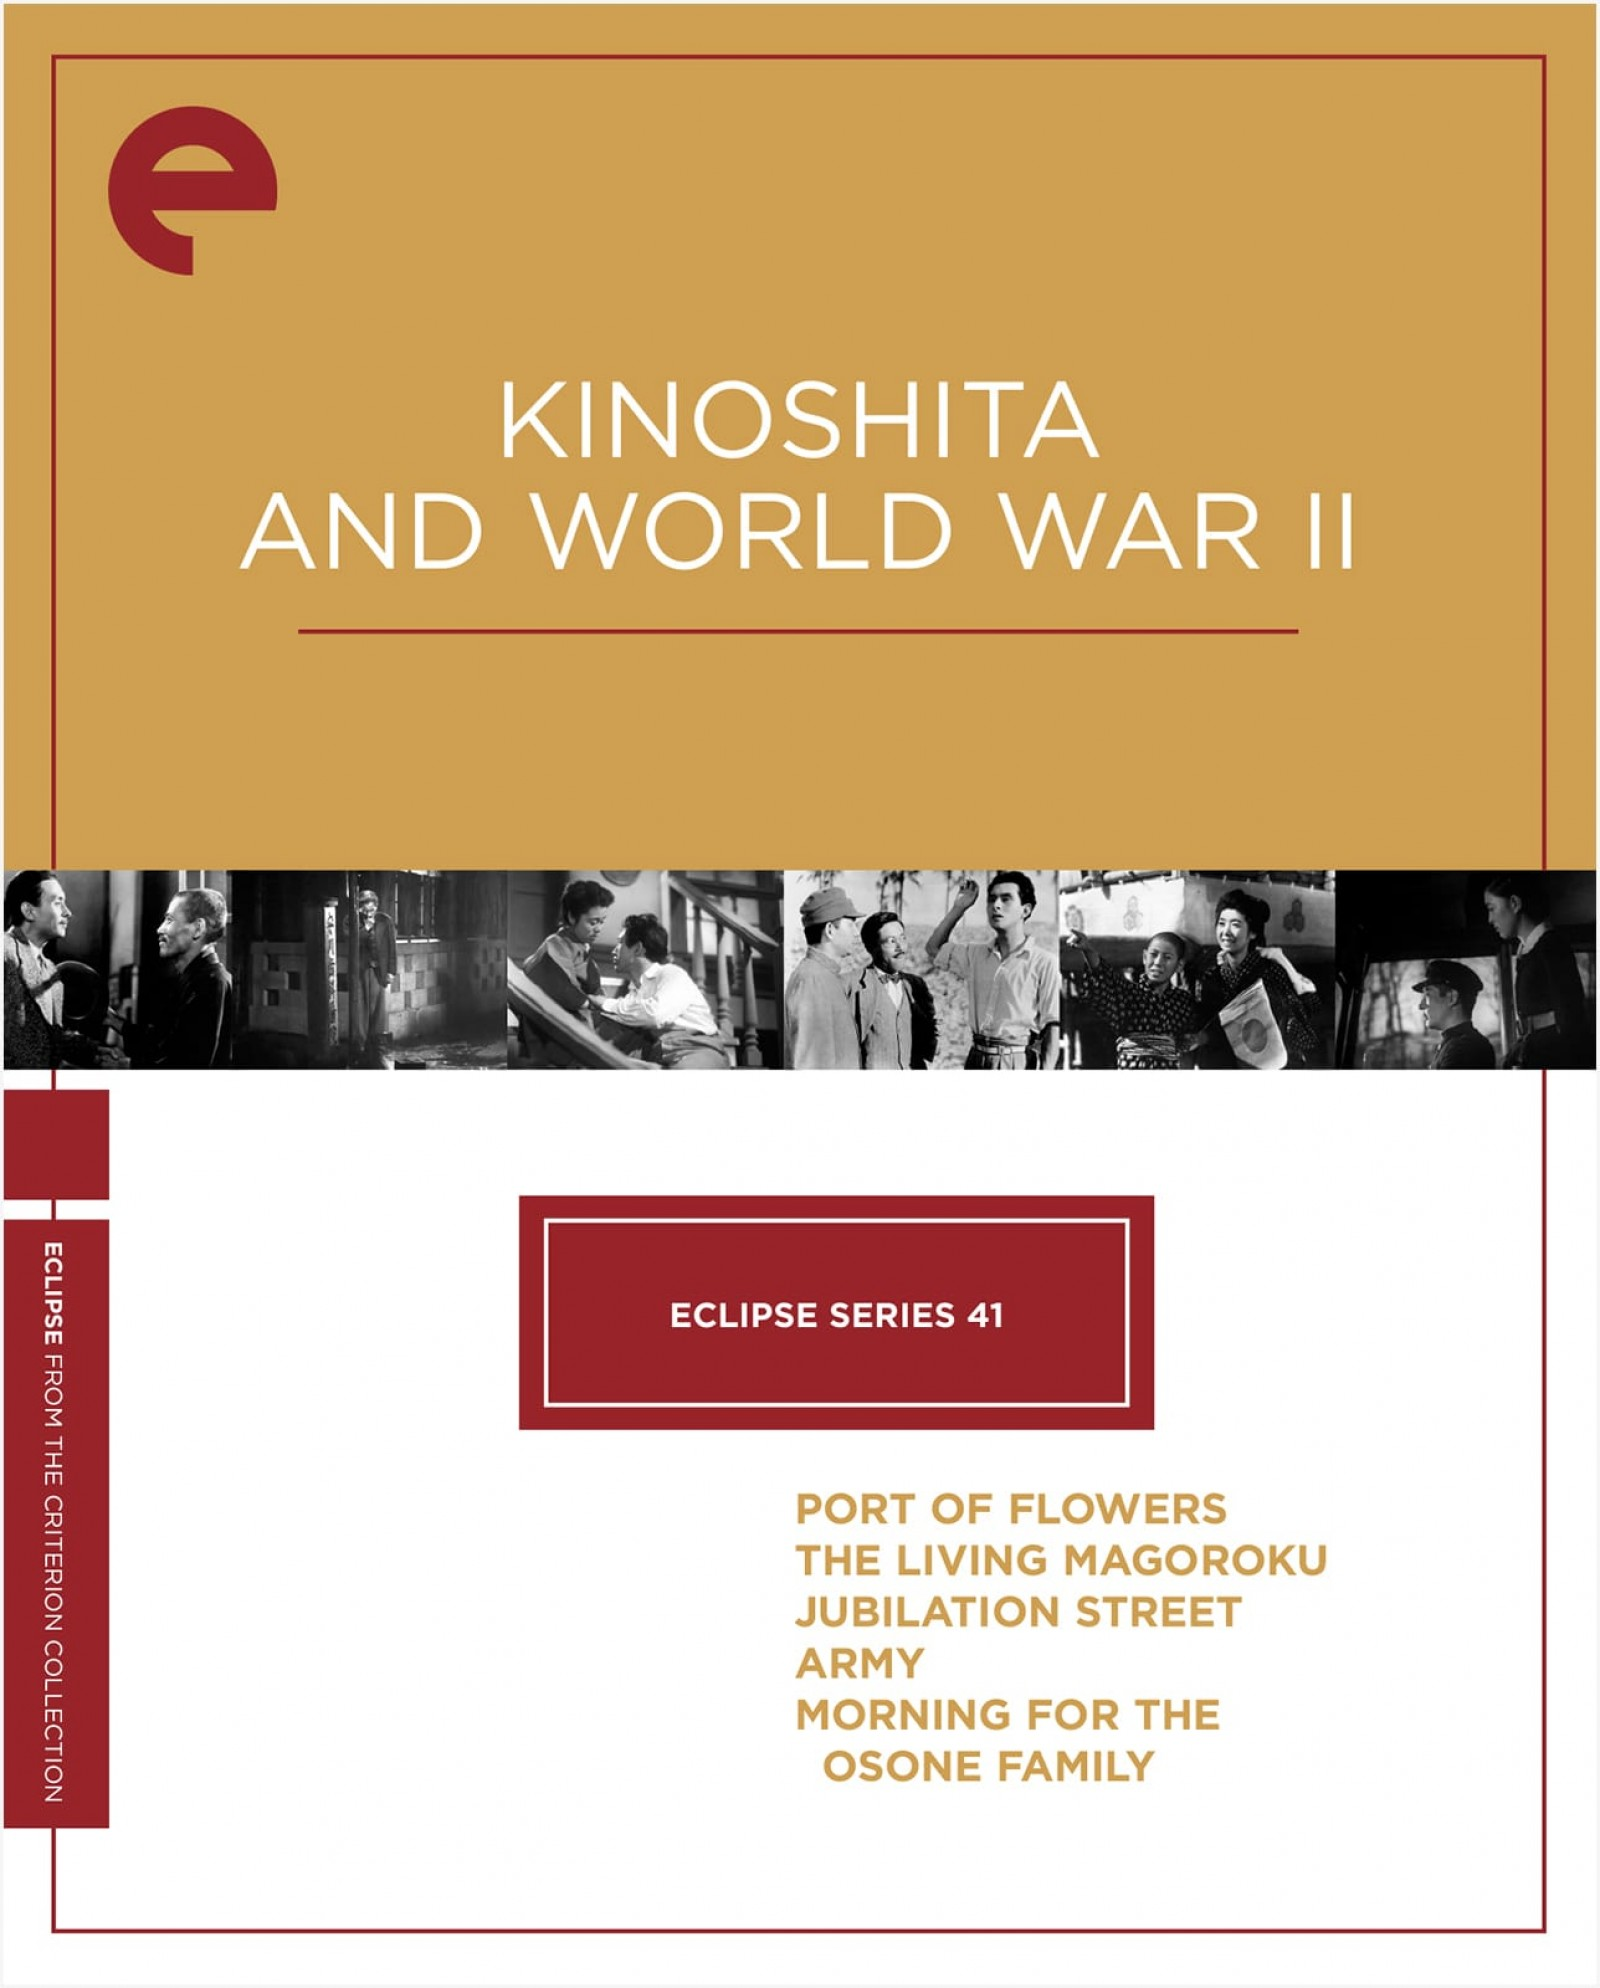 Eclipse Series 41: Kinoshita and World War II